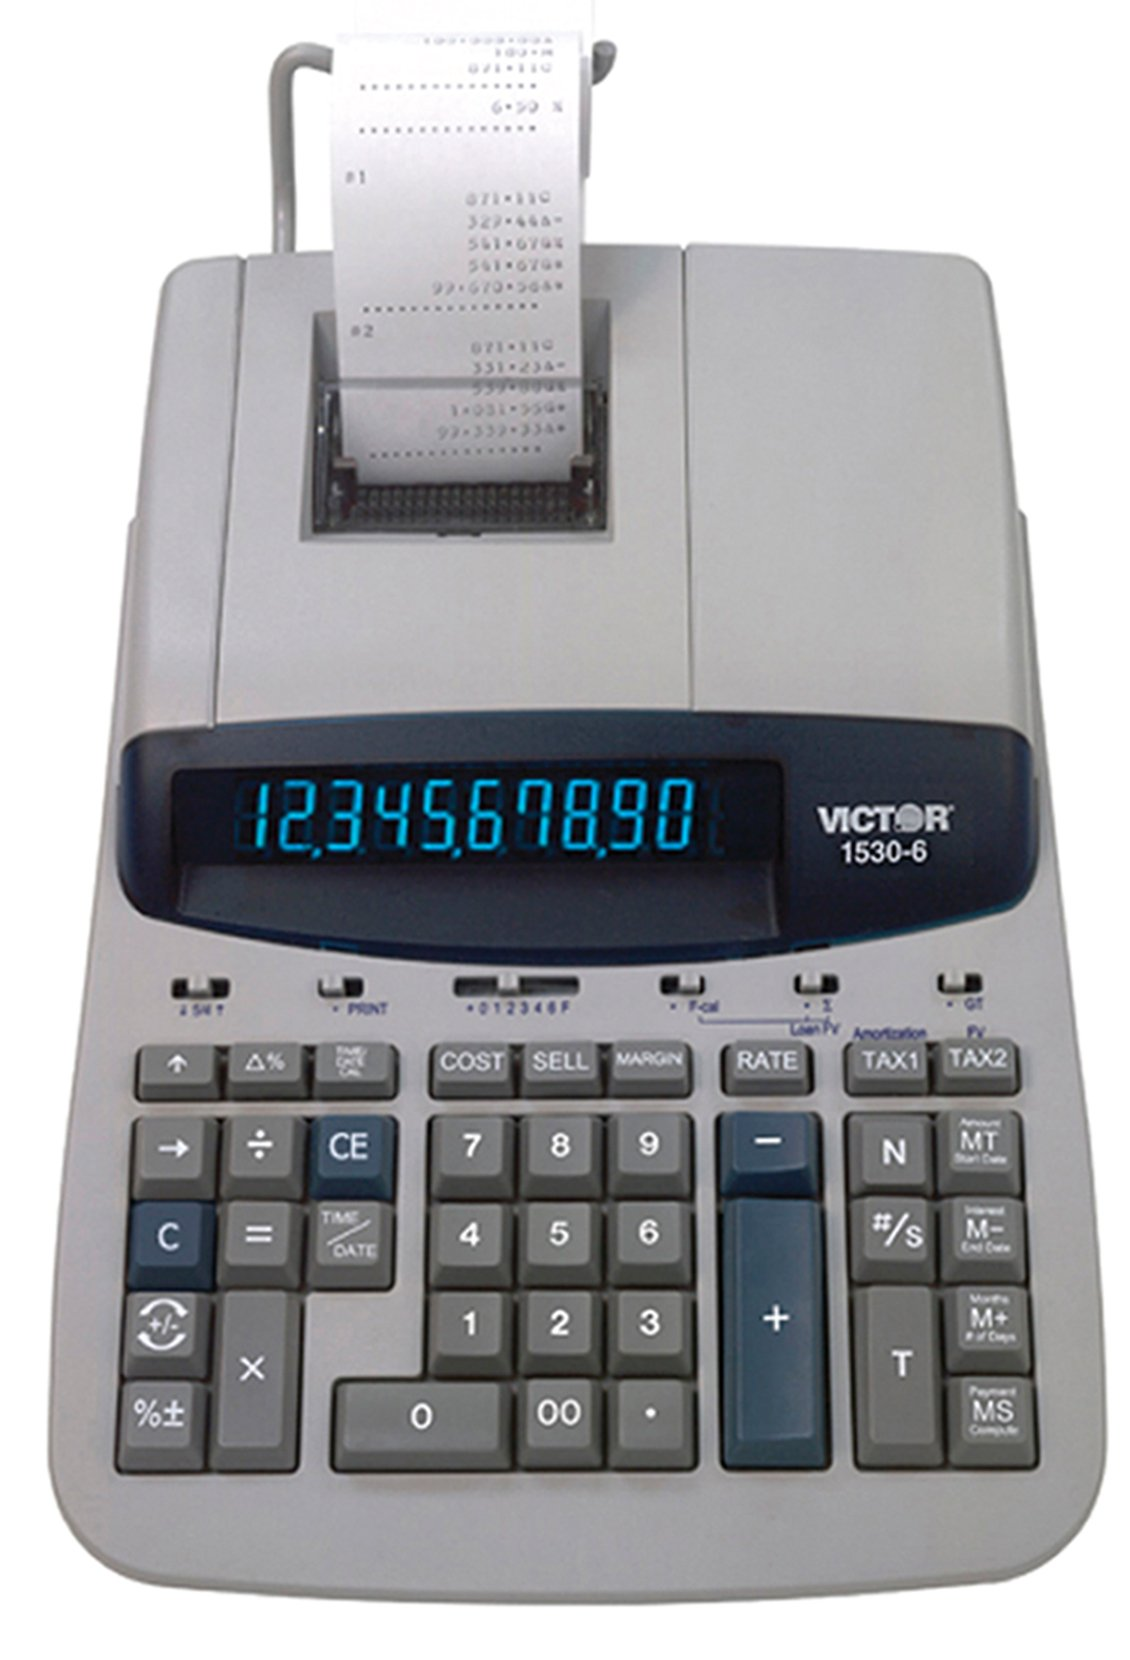 Victor 1530-6 10 Digit Professional Grade Heavy Duty Commercial Printing Calculator with Large Display and Loan Wizard by Victor